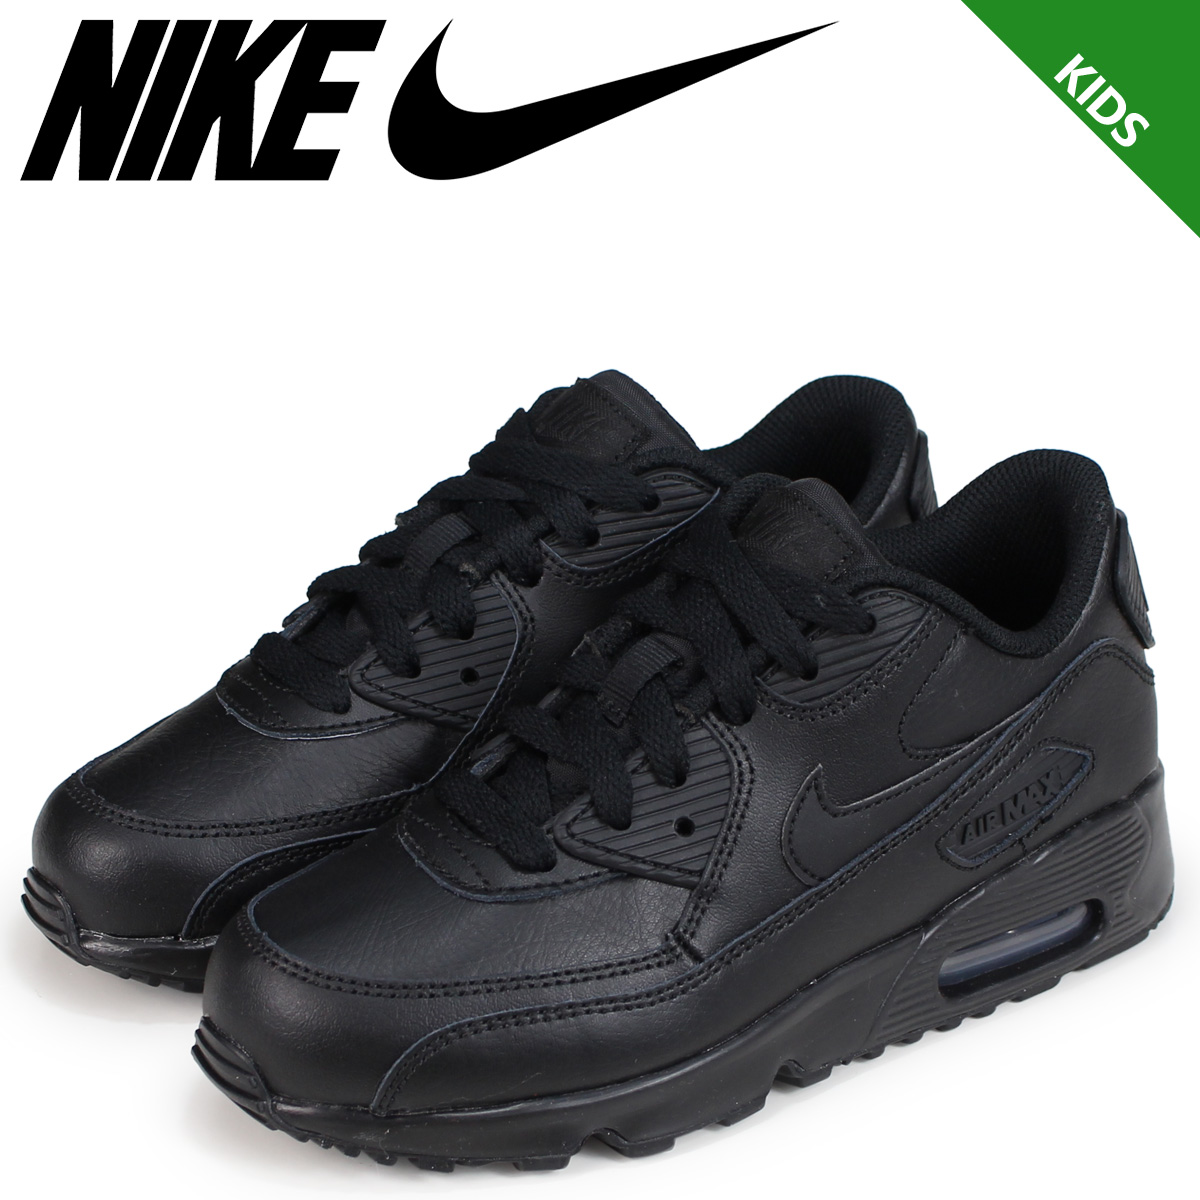 new concept 3e122 df092 NIKE Kie Ney AMAX 90 kids sneakers AIR MAX 90 LEATHER PS 833,414-001 black  ...